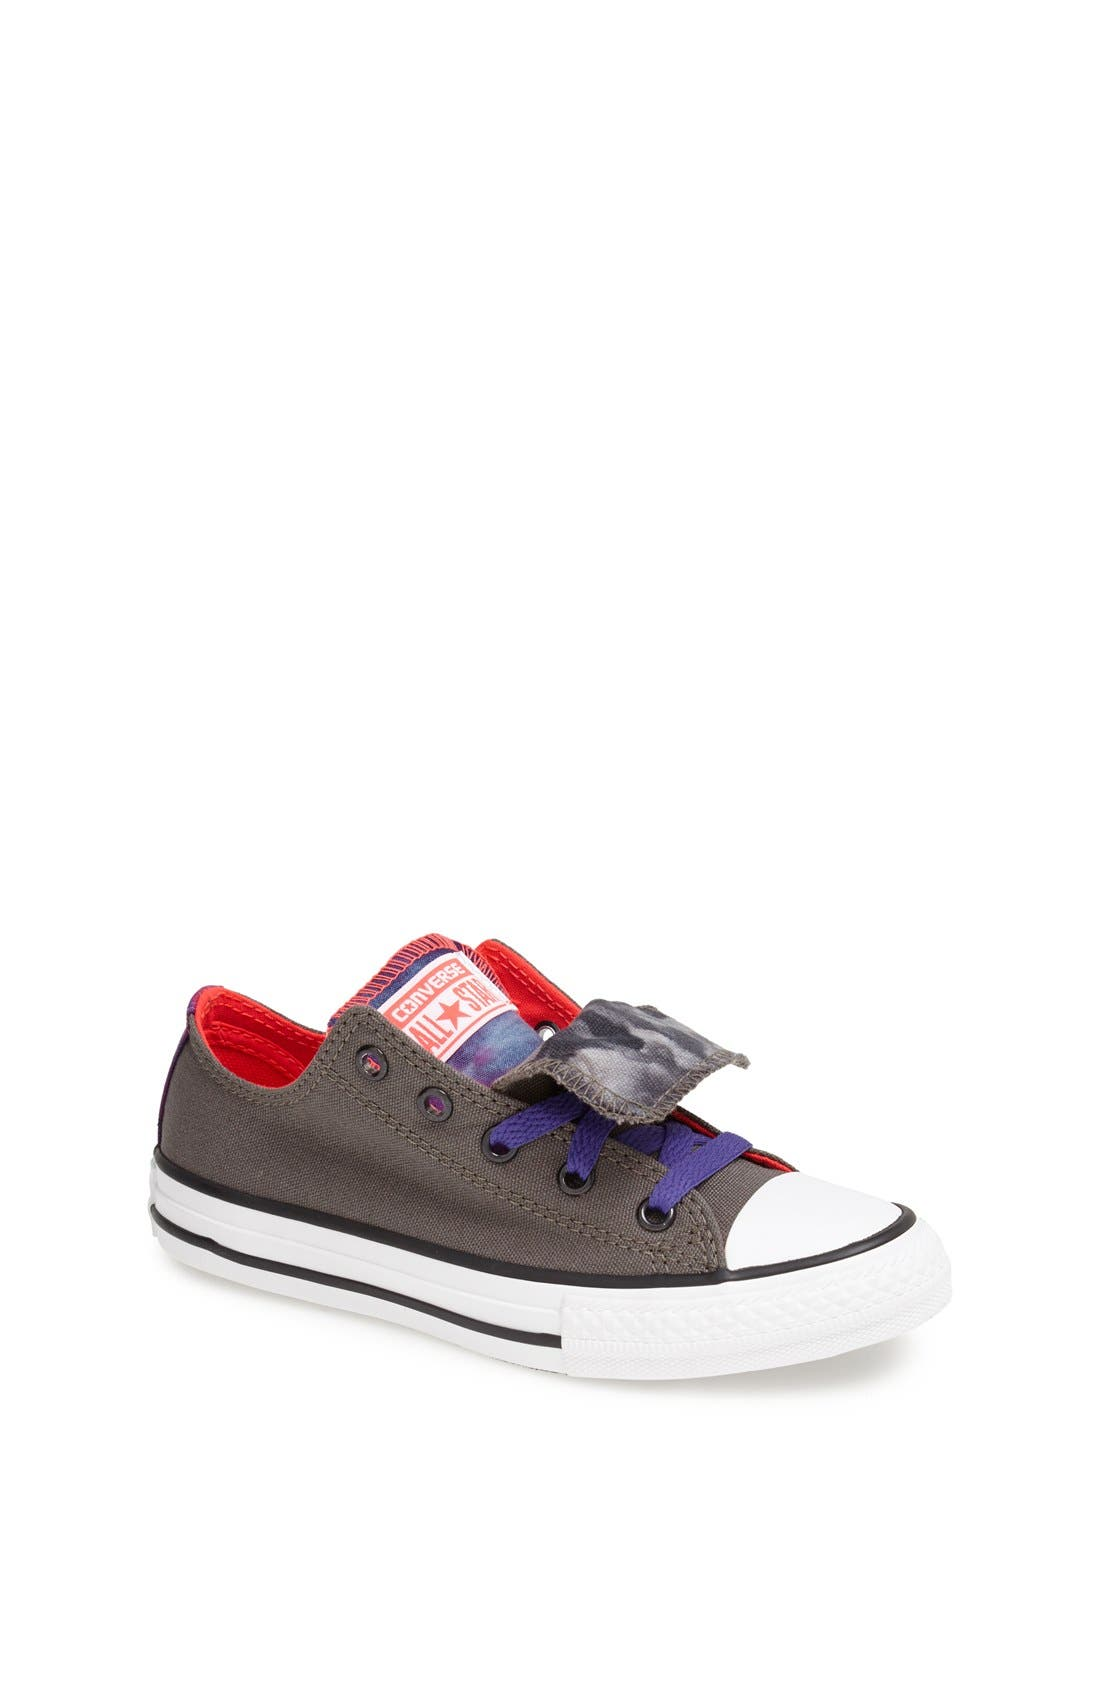 Main Image - Converse Chuck Taylor® Double Zip Sneaker (Toddler, Little Kid & Big Kid)